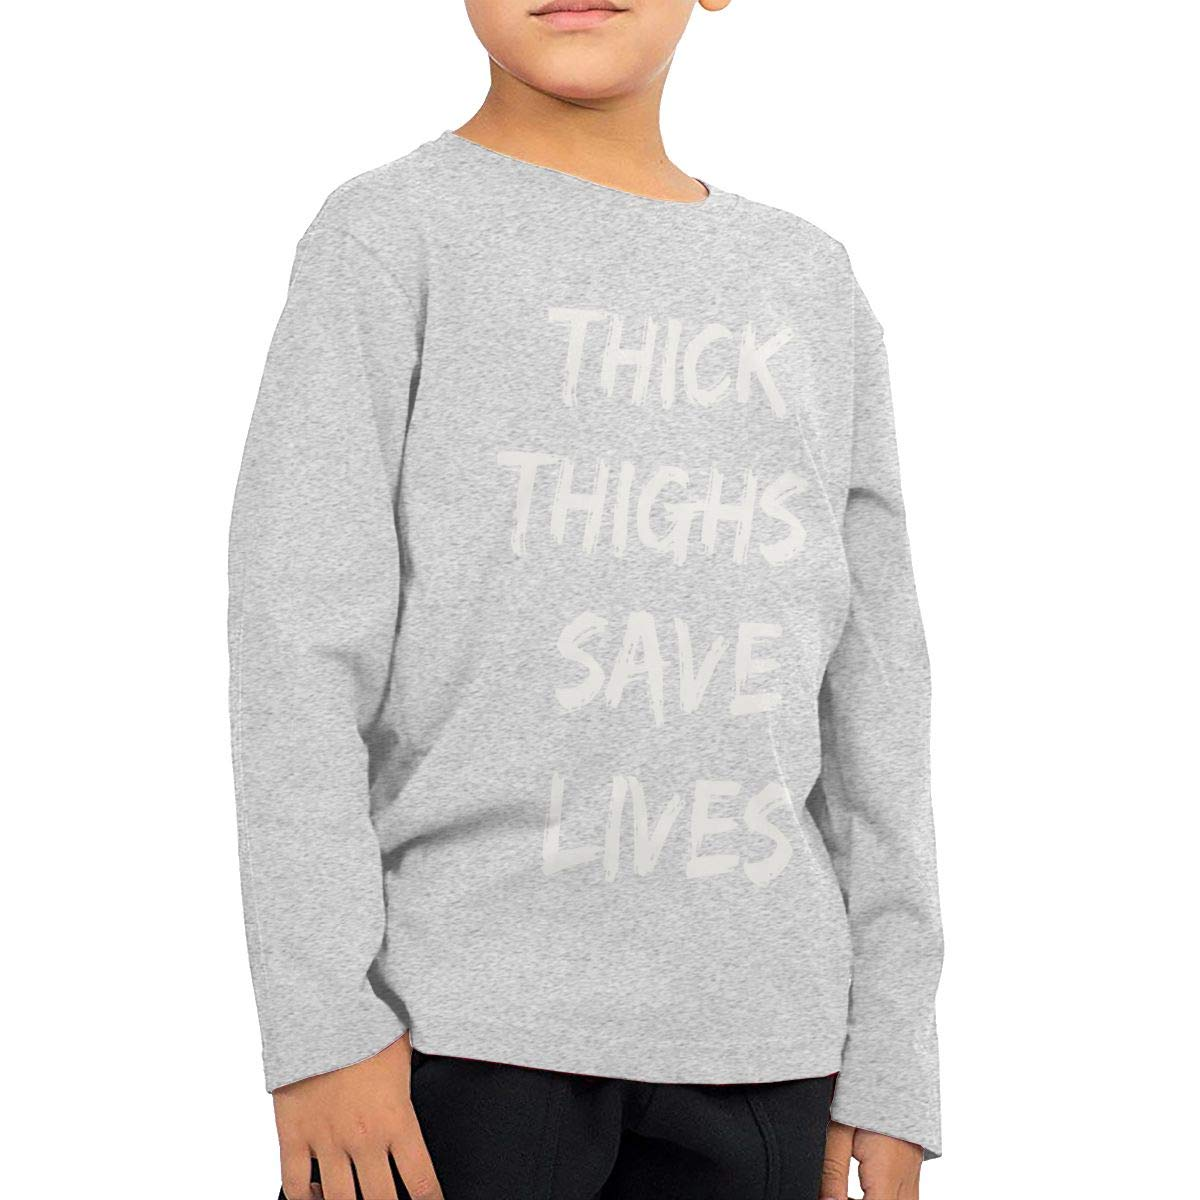 SKYAKLJA Thick Thighs Save Lives Childrens Gray Cotton Long Sleeve Round Neck Tee Shirt for Boy Or Girl